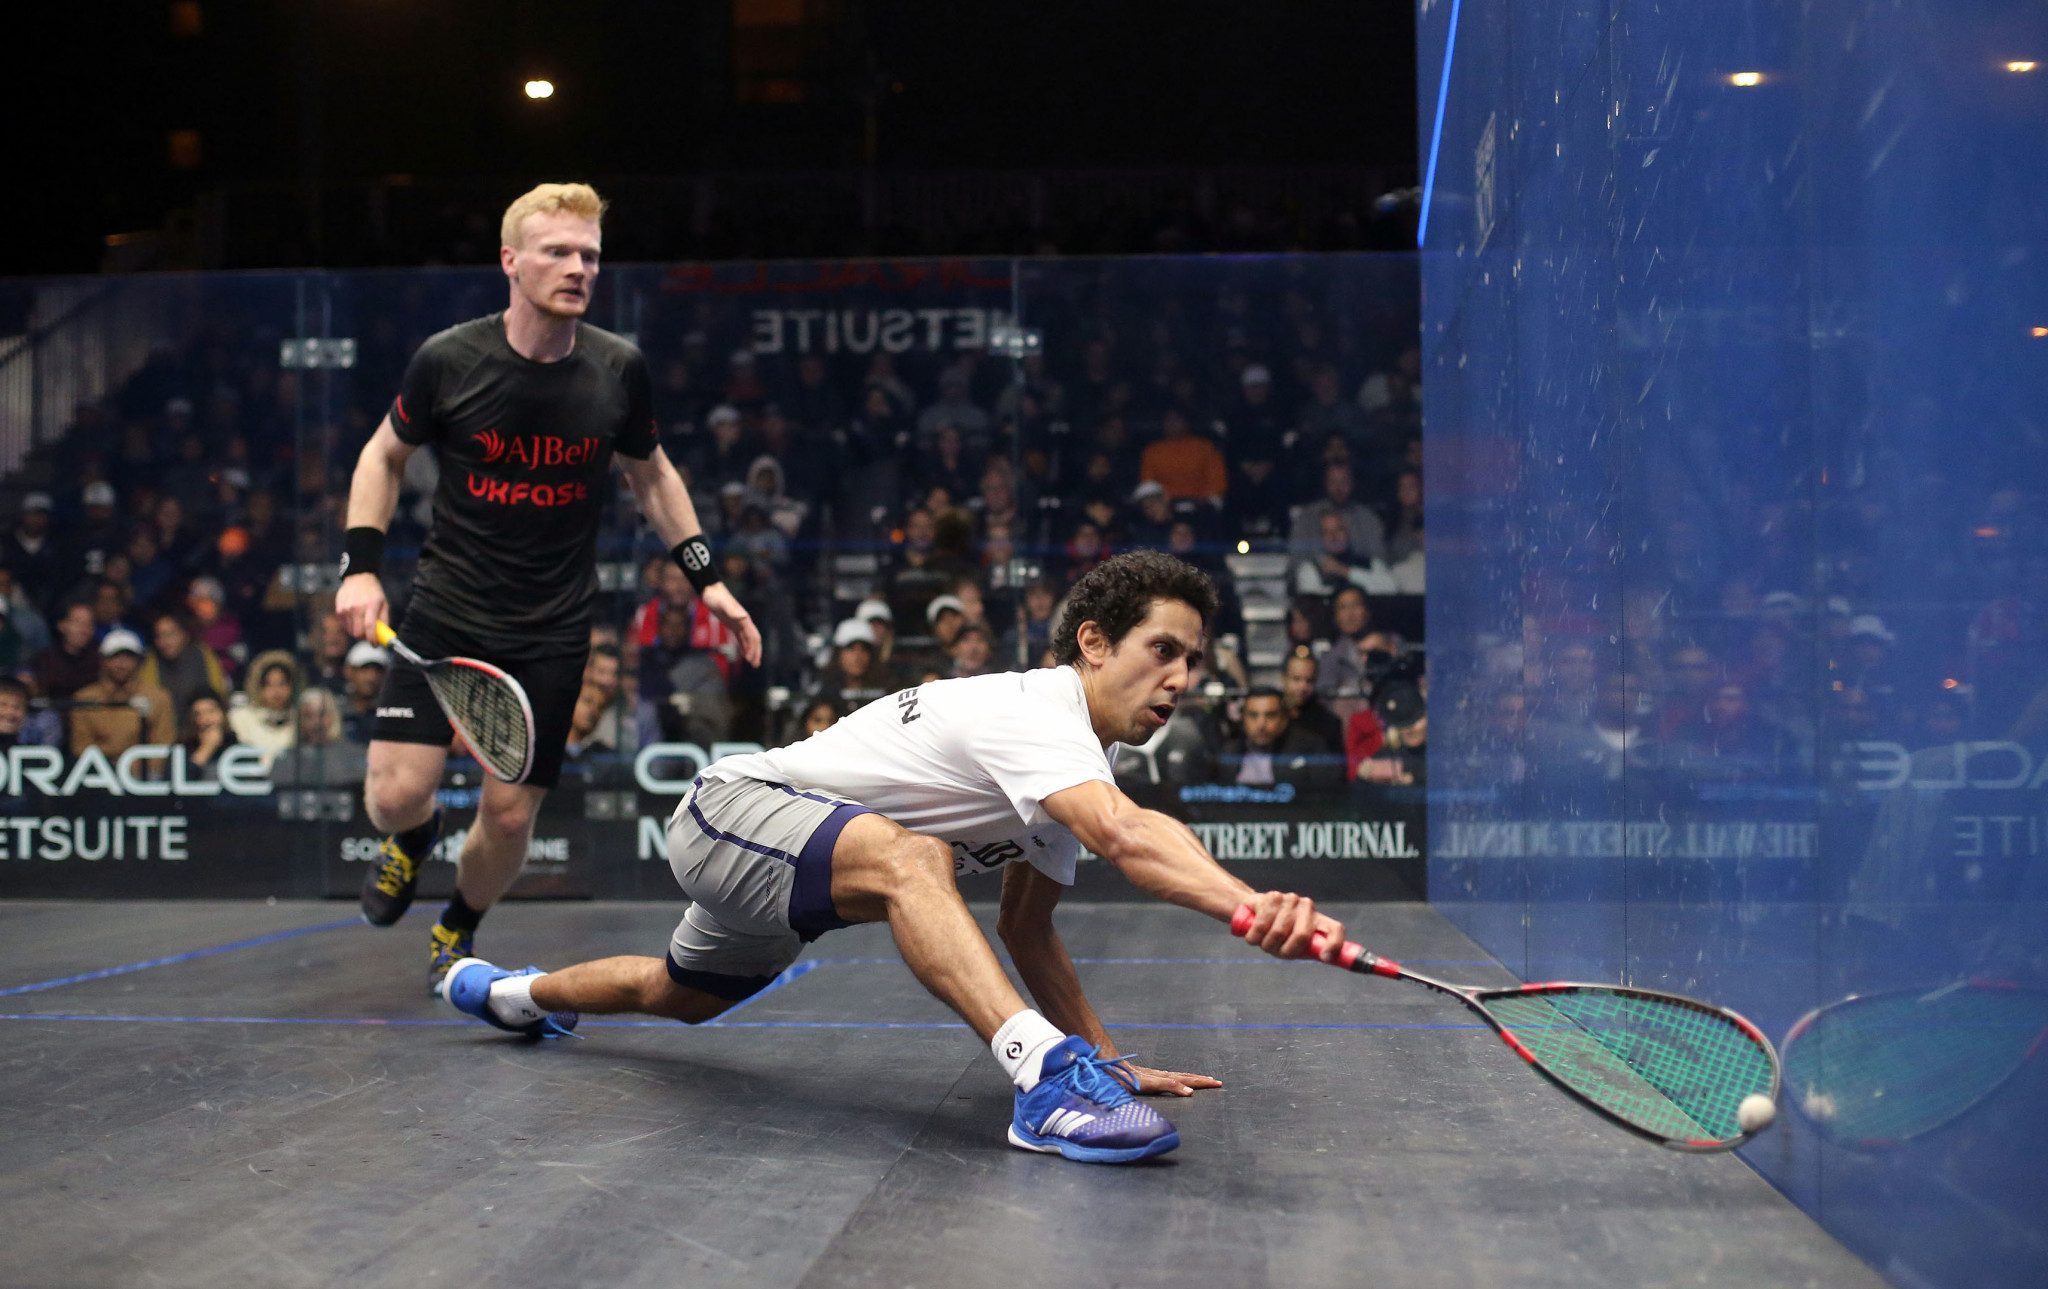 Egypt's world number three Tarek Momen came from behind in his last eight clash with Wales' Joel Makin at the PSA Oracle NetSuite Open in San Francisco ©PSA